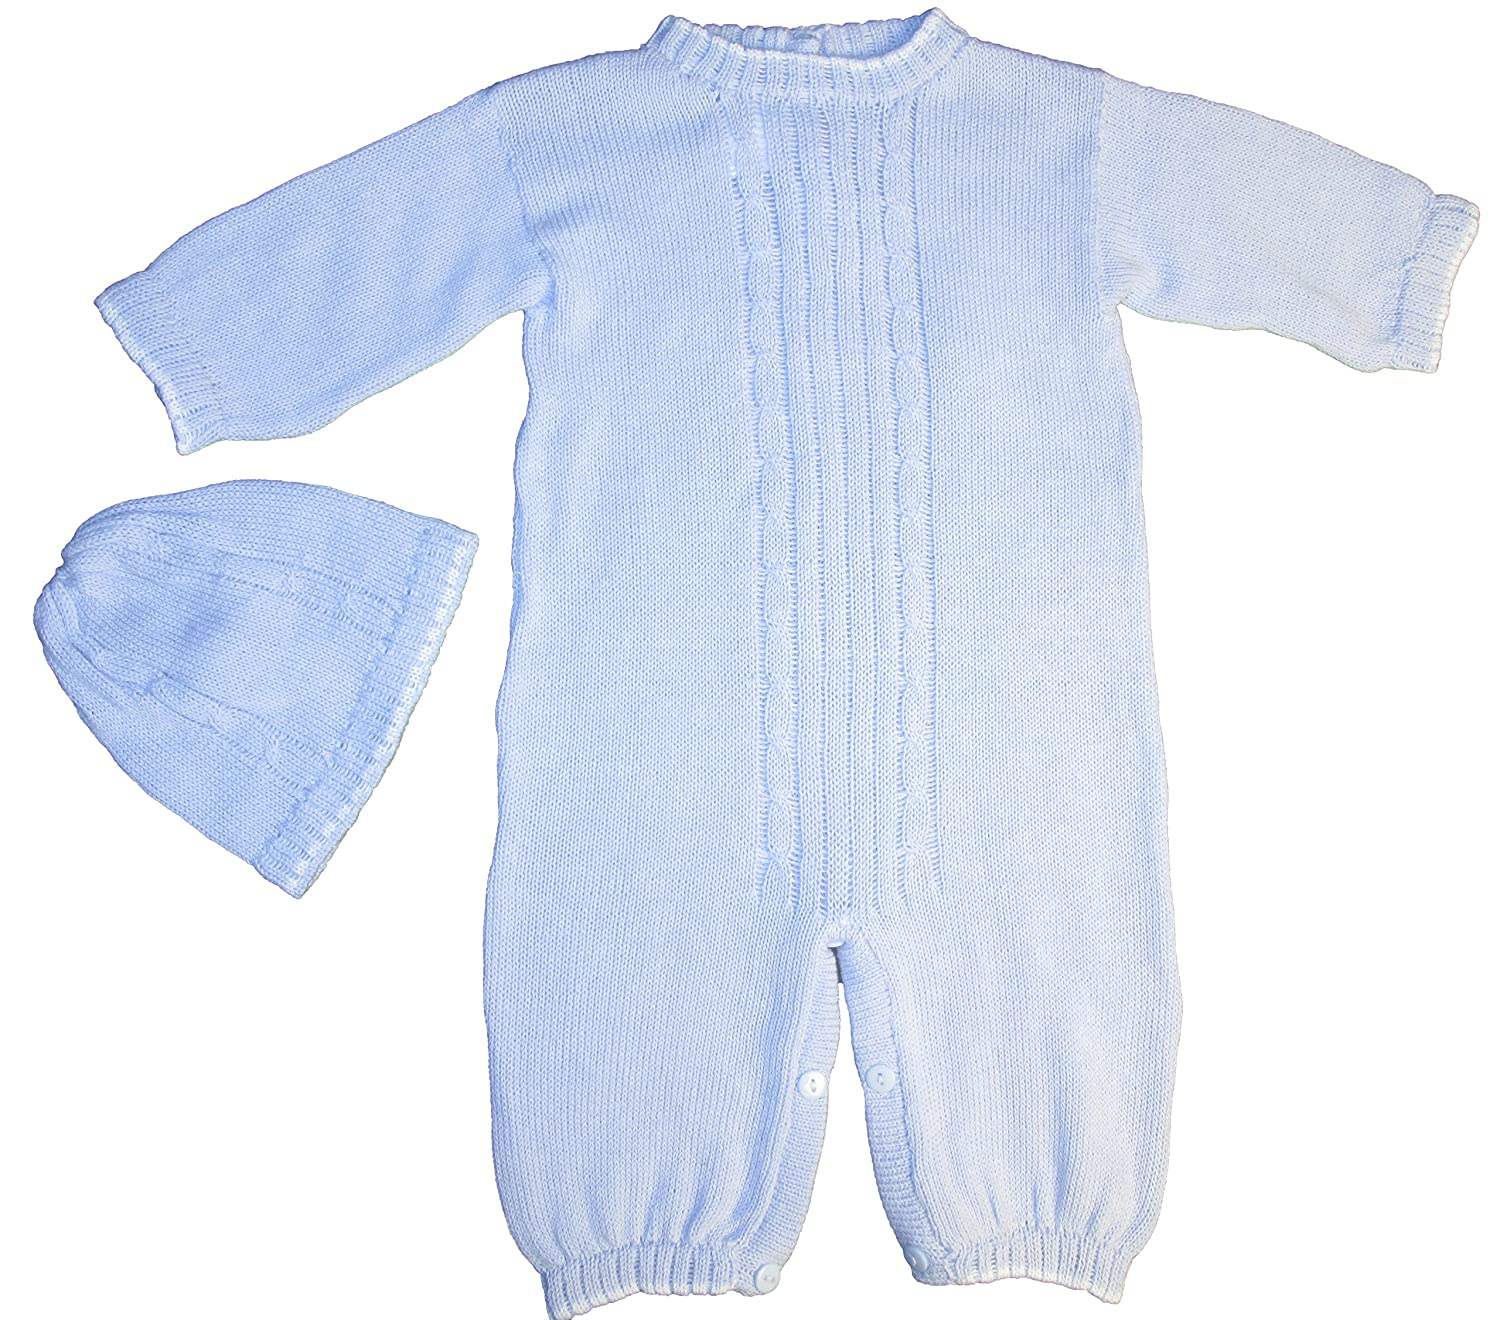 100% Cotton Baby Blue Boys 2 Piece Cable-Knit Longall with Cap Gift Set